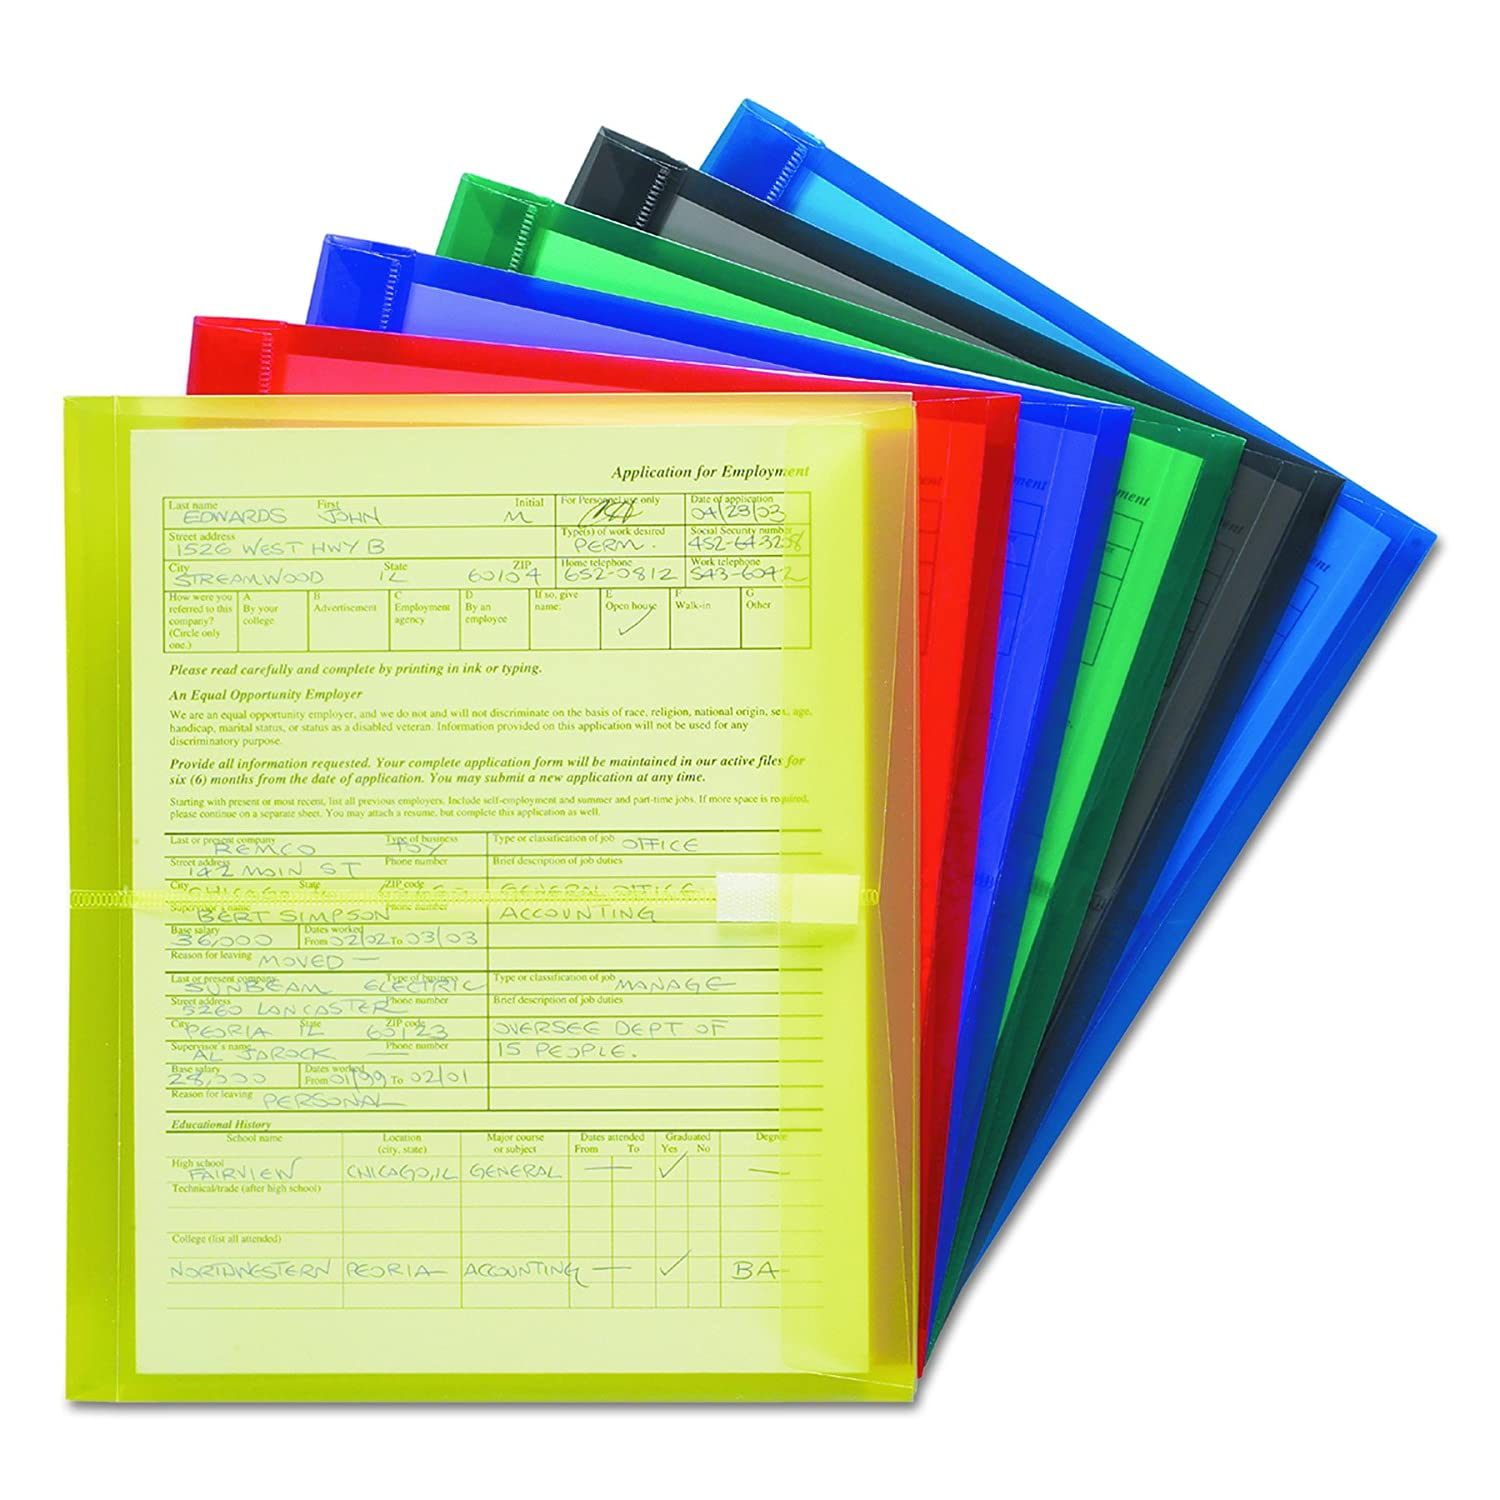 Smead Envelopes with 1.1/4 -Inch Expansion, Polypropylene, Letter Size, 8.5 x 11, Blue/Green/Purple/Red/Smoke/Yellow, 6 Per Pack (89669)